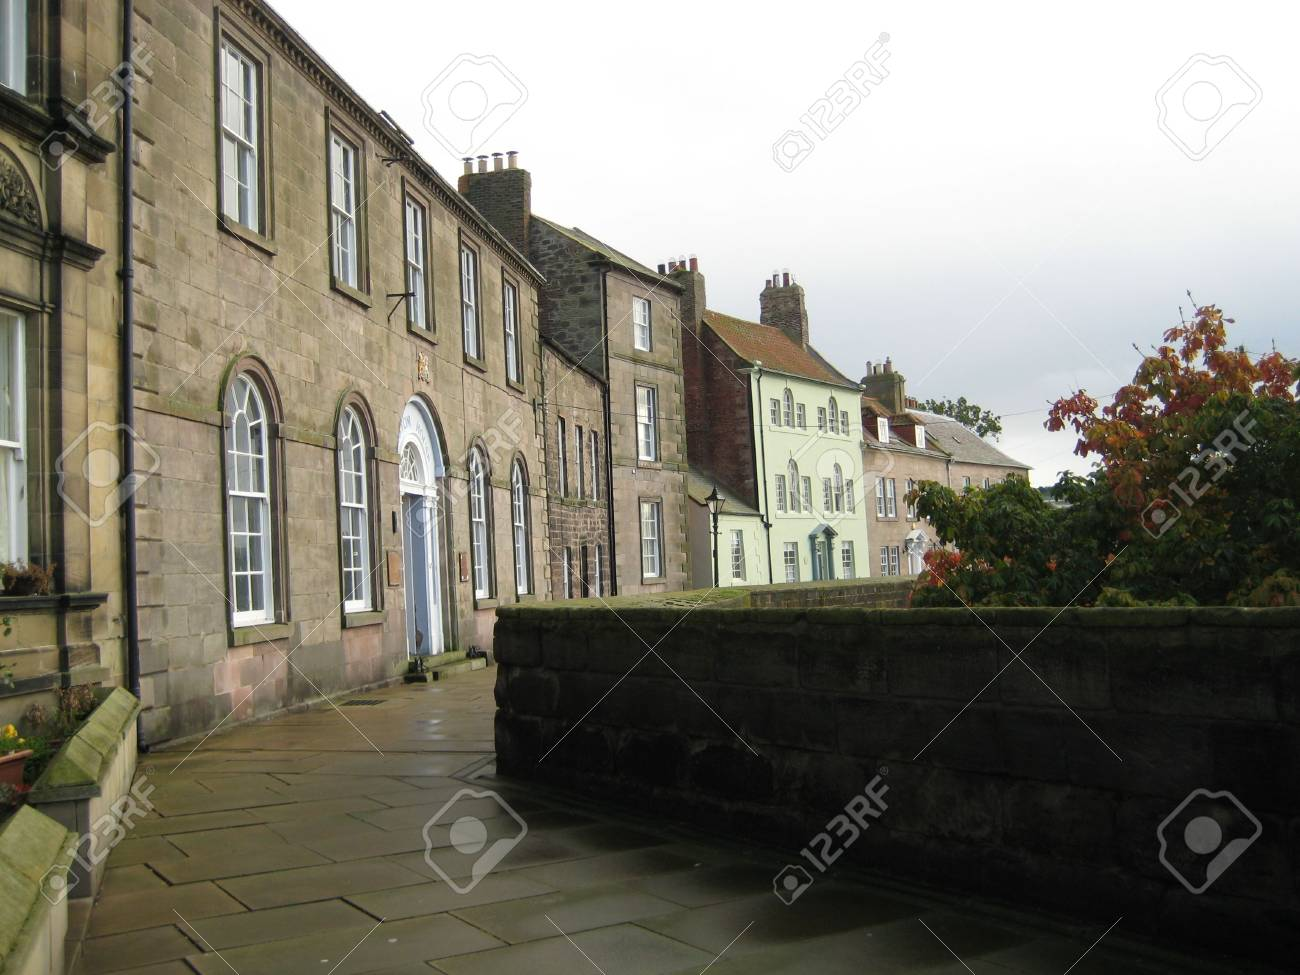 picture was taken in Berwick-upon-Tweed in Northumberland, England Stock Photo - 4163147